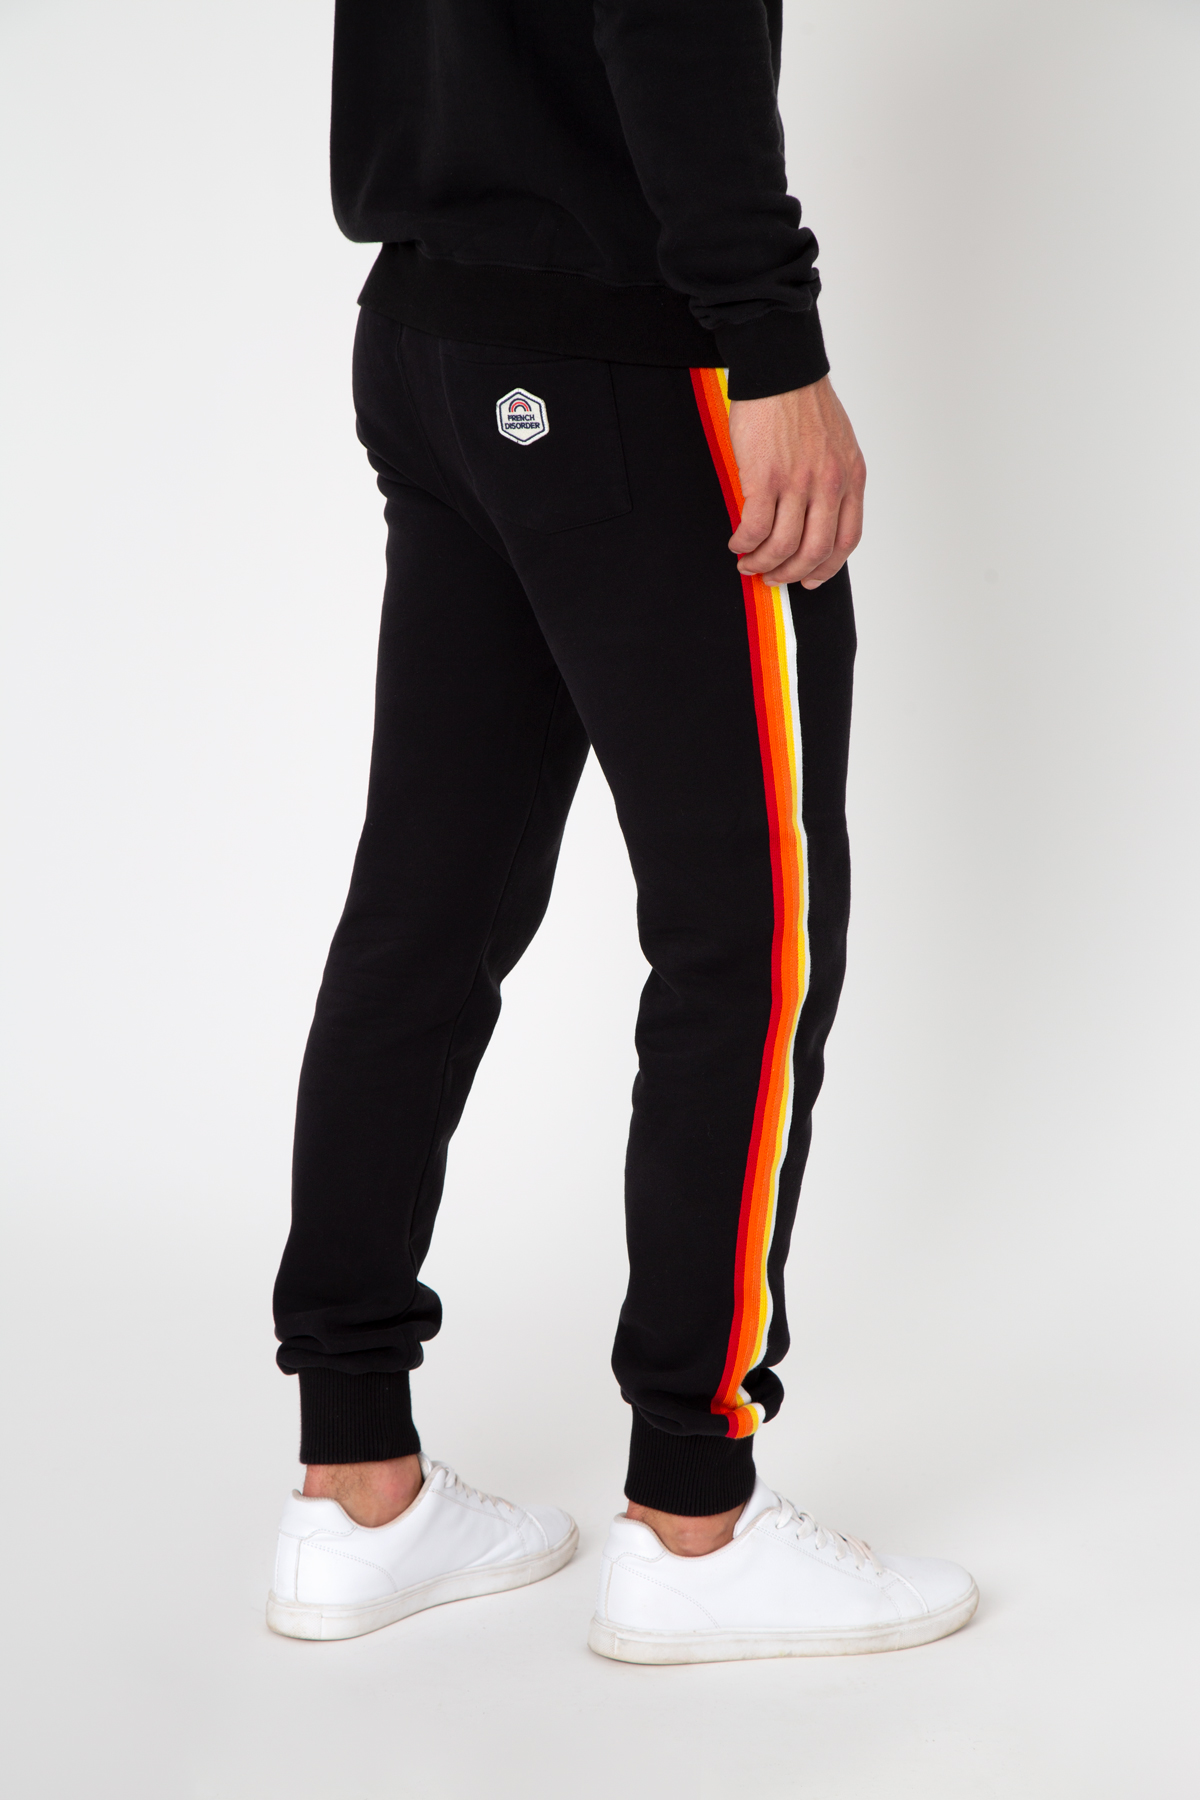 Photo de Pantalon & Jogger homme Jogger HARLEM STRIPES chez French Disorder